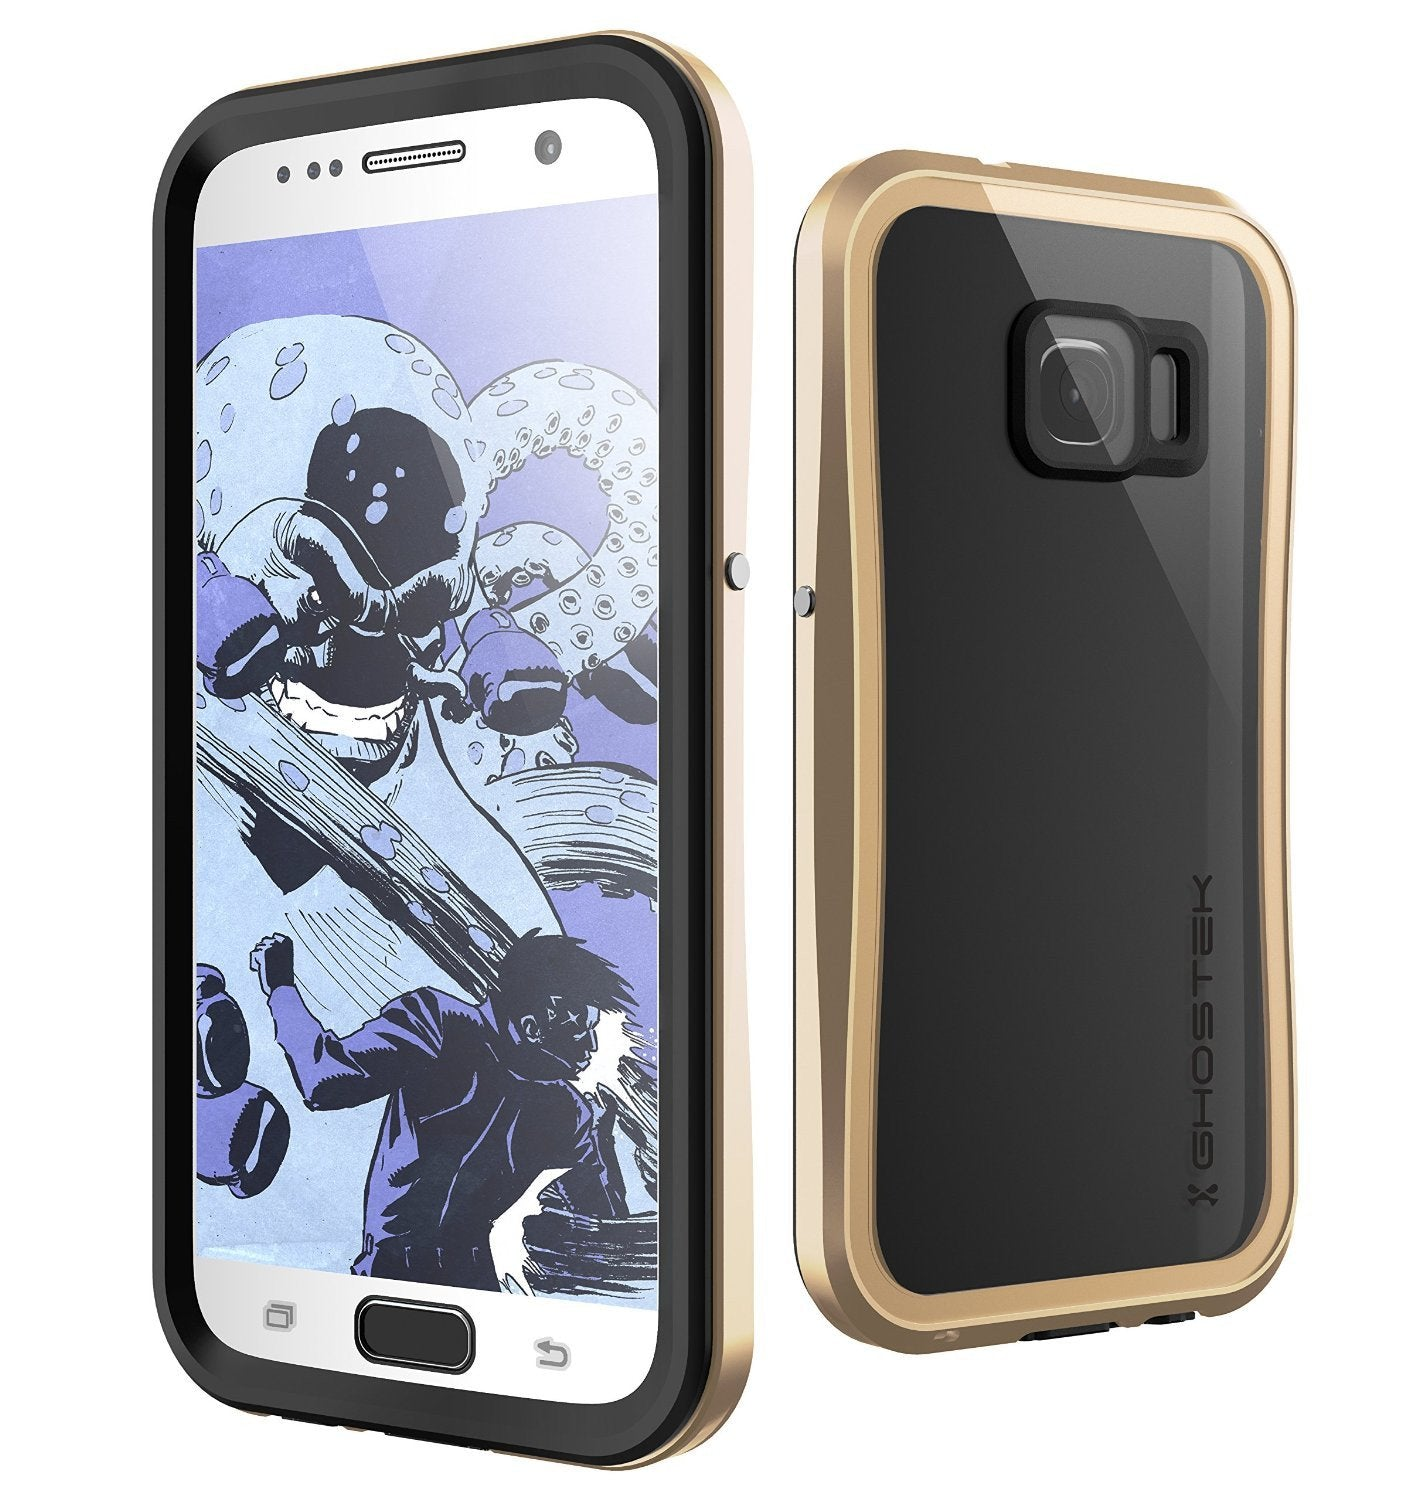 Galaxy S7 Waterproof Case, Ghostek Atomic 2.0 Gold  Water/Shock/Dirt/Snow Proof | Lifetime Warranty - PunkCase NZ